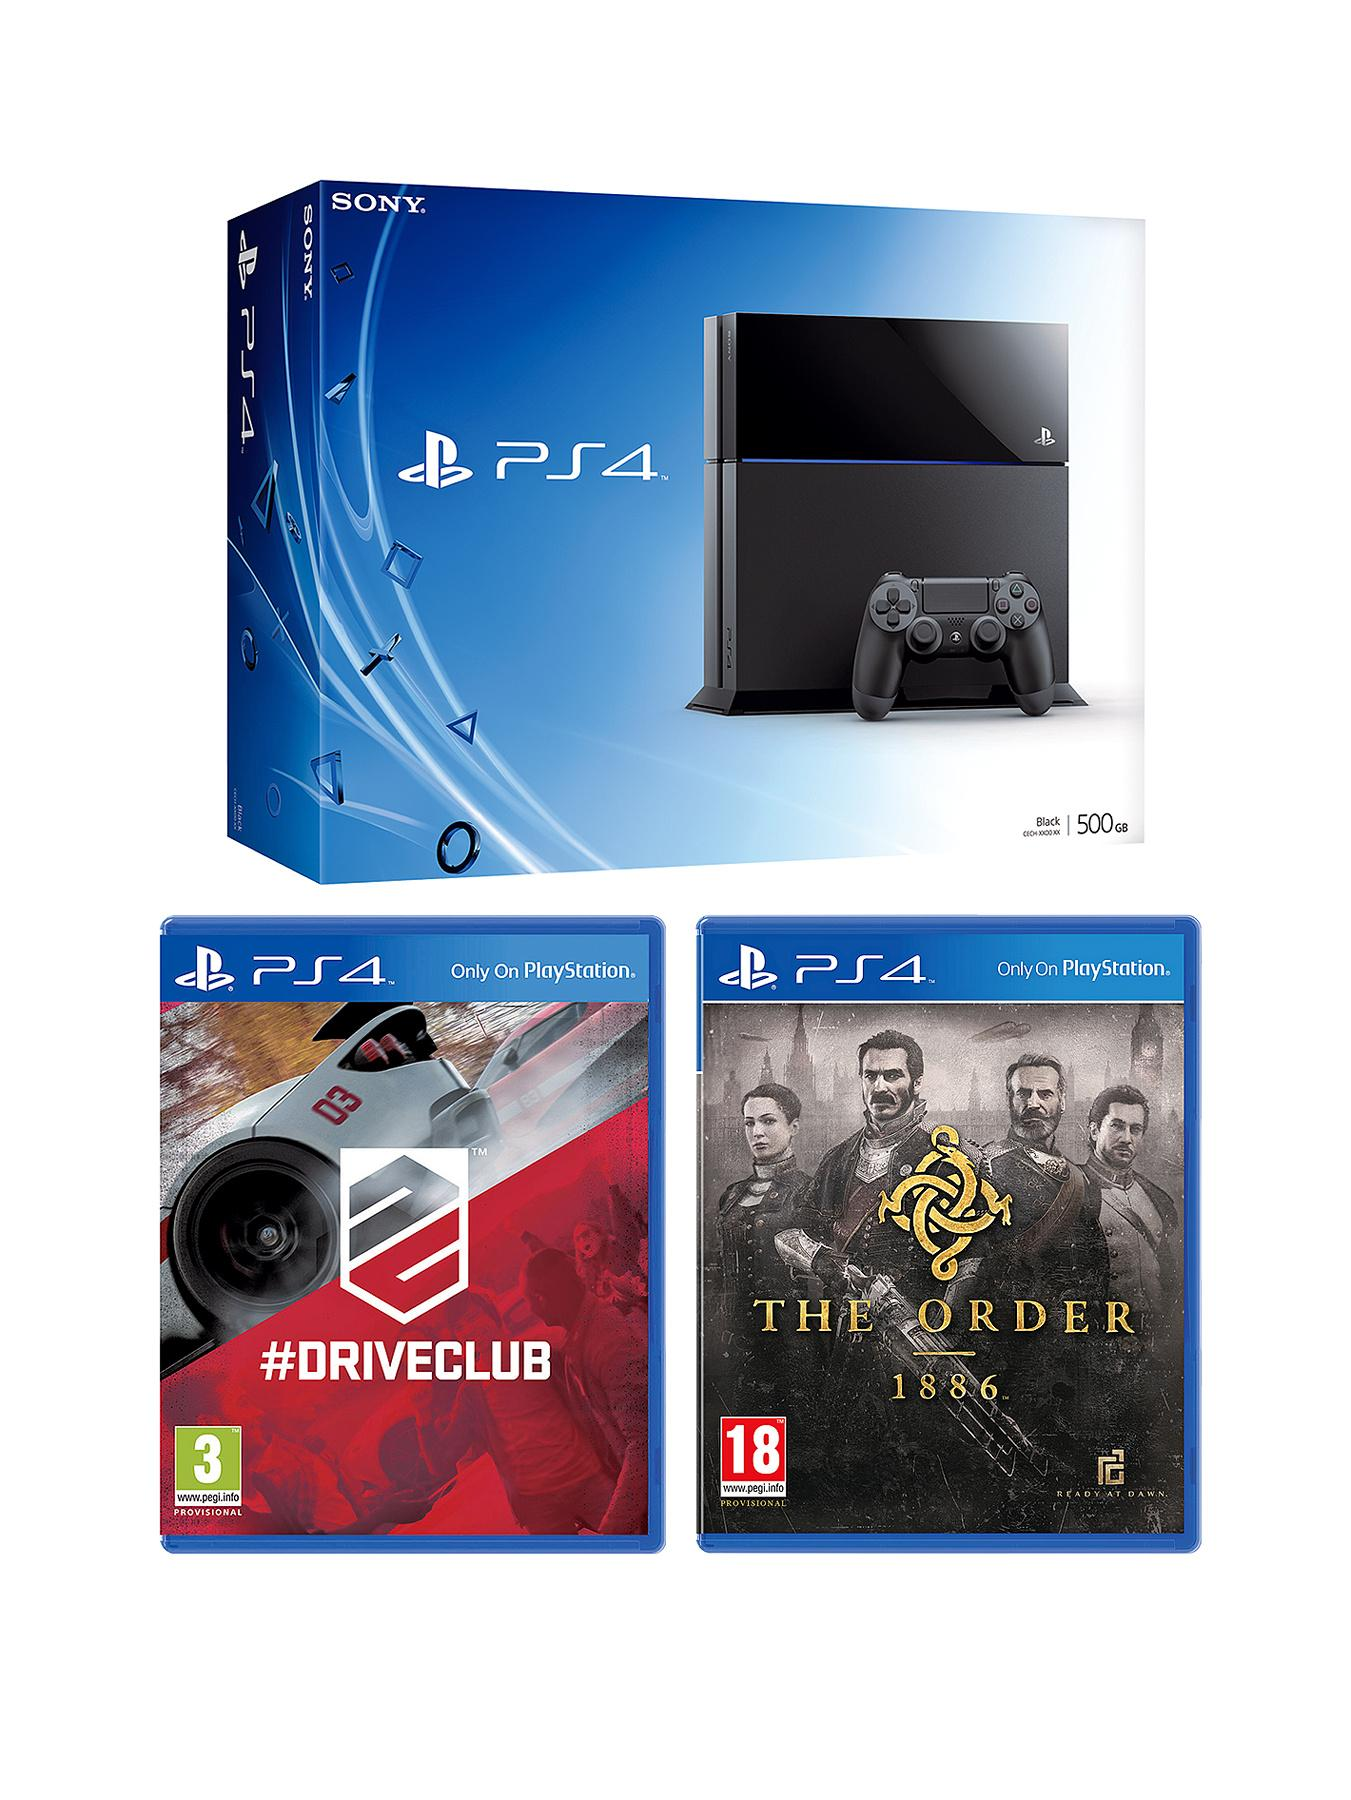 Playstation 4 Console with The Order: 1886, Driveclub and Optional 12 Months Playstation Plus or DualShock 4 Controller